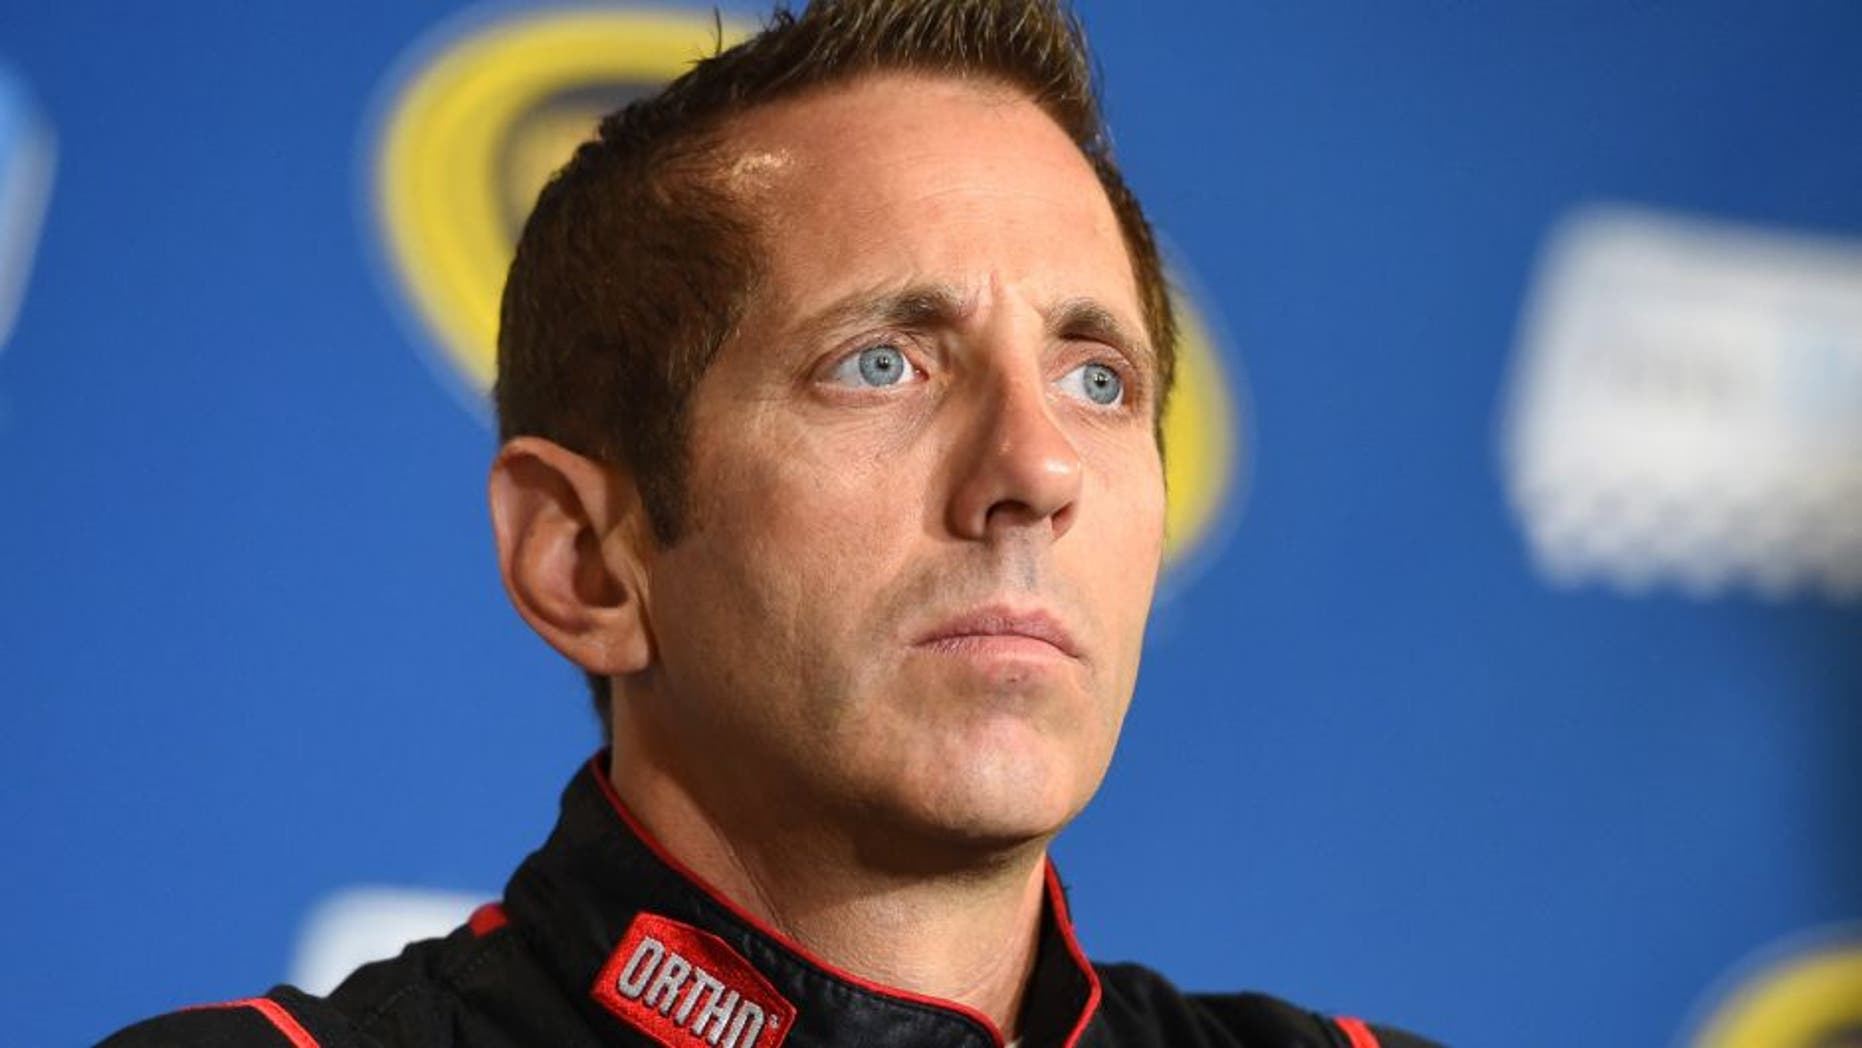 BROOKLYN, MI - AUGUST 14: Greg Biffle, driver of the #16 Ortho Ford, holds a press conference before practice for the NASCAR Sprint Cup Series Pure Michigan 400 at Michigan International Speedway on August 14, 2015 in Brooklyn, Michigan. (Photo by Josh Hedges/Getty Images)